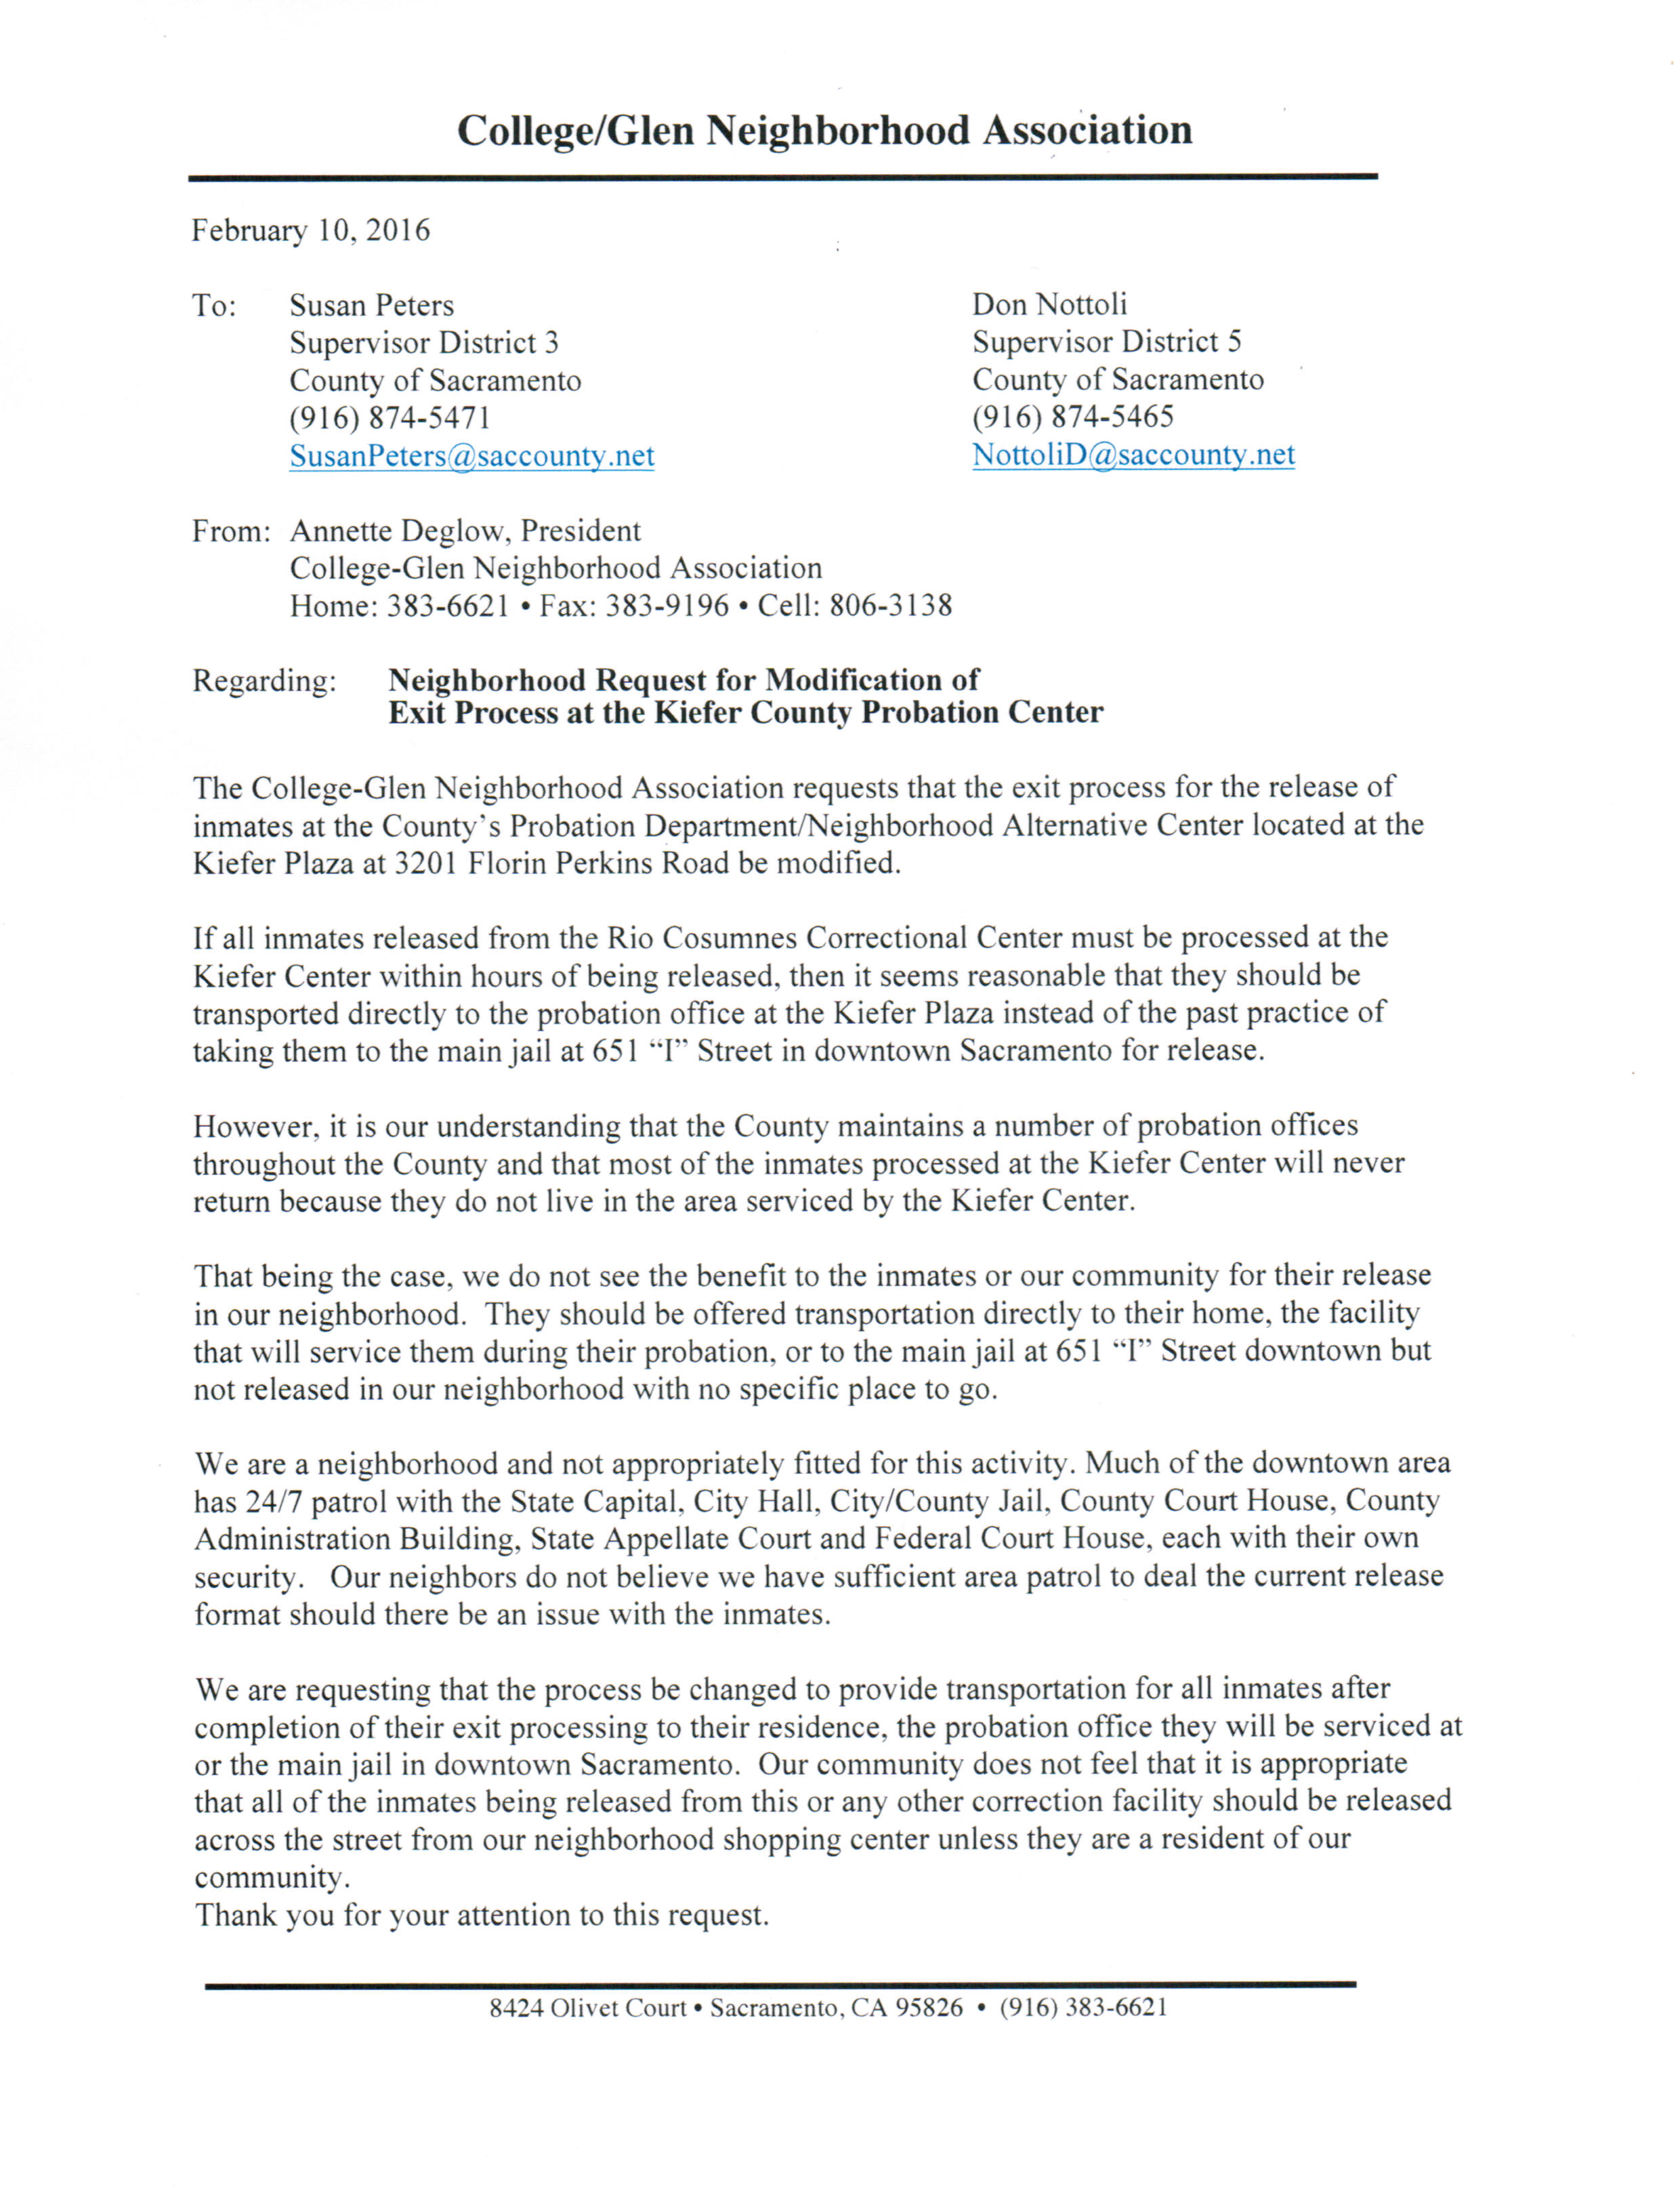 Letters to supervisor susan peters regarding kiefer county probation click image to read entire letter spiritdancerdesigns